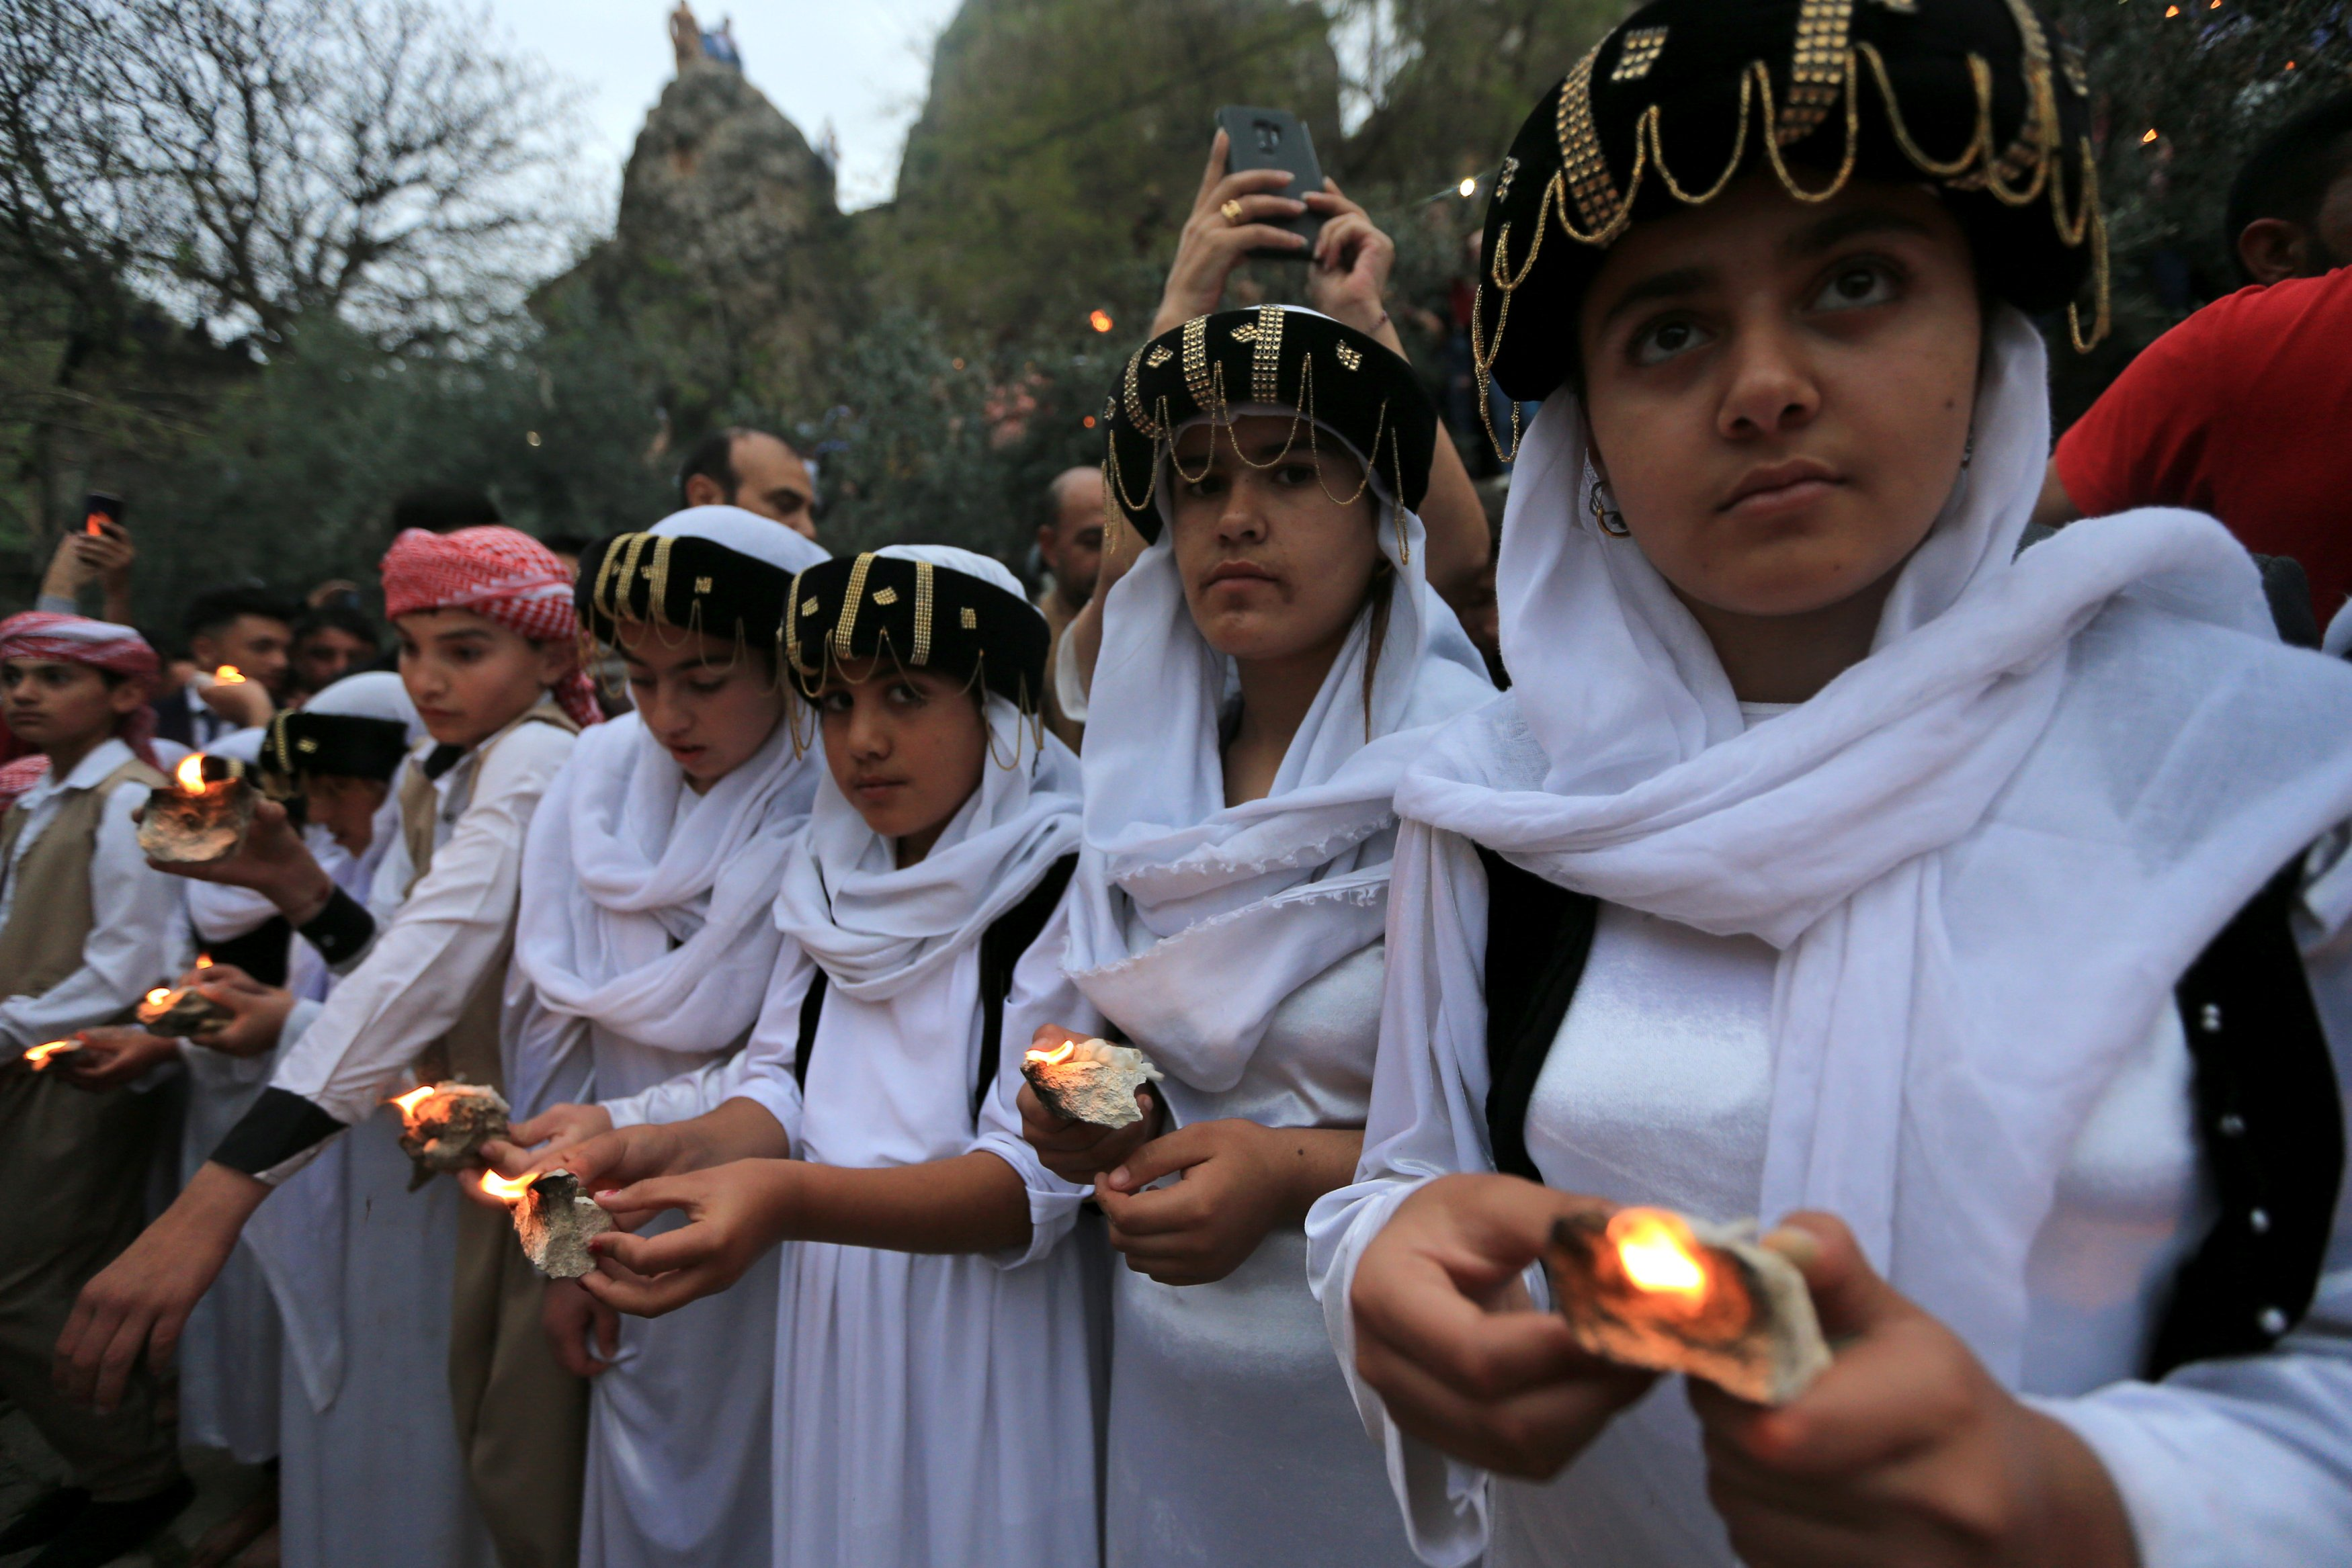 In pictures: Yazidis celebrate New Year at ancient temple